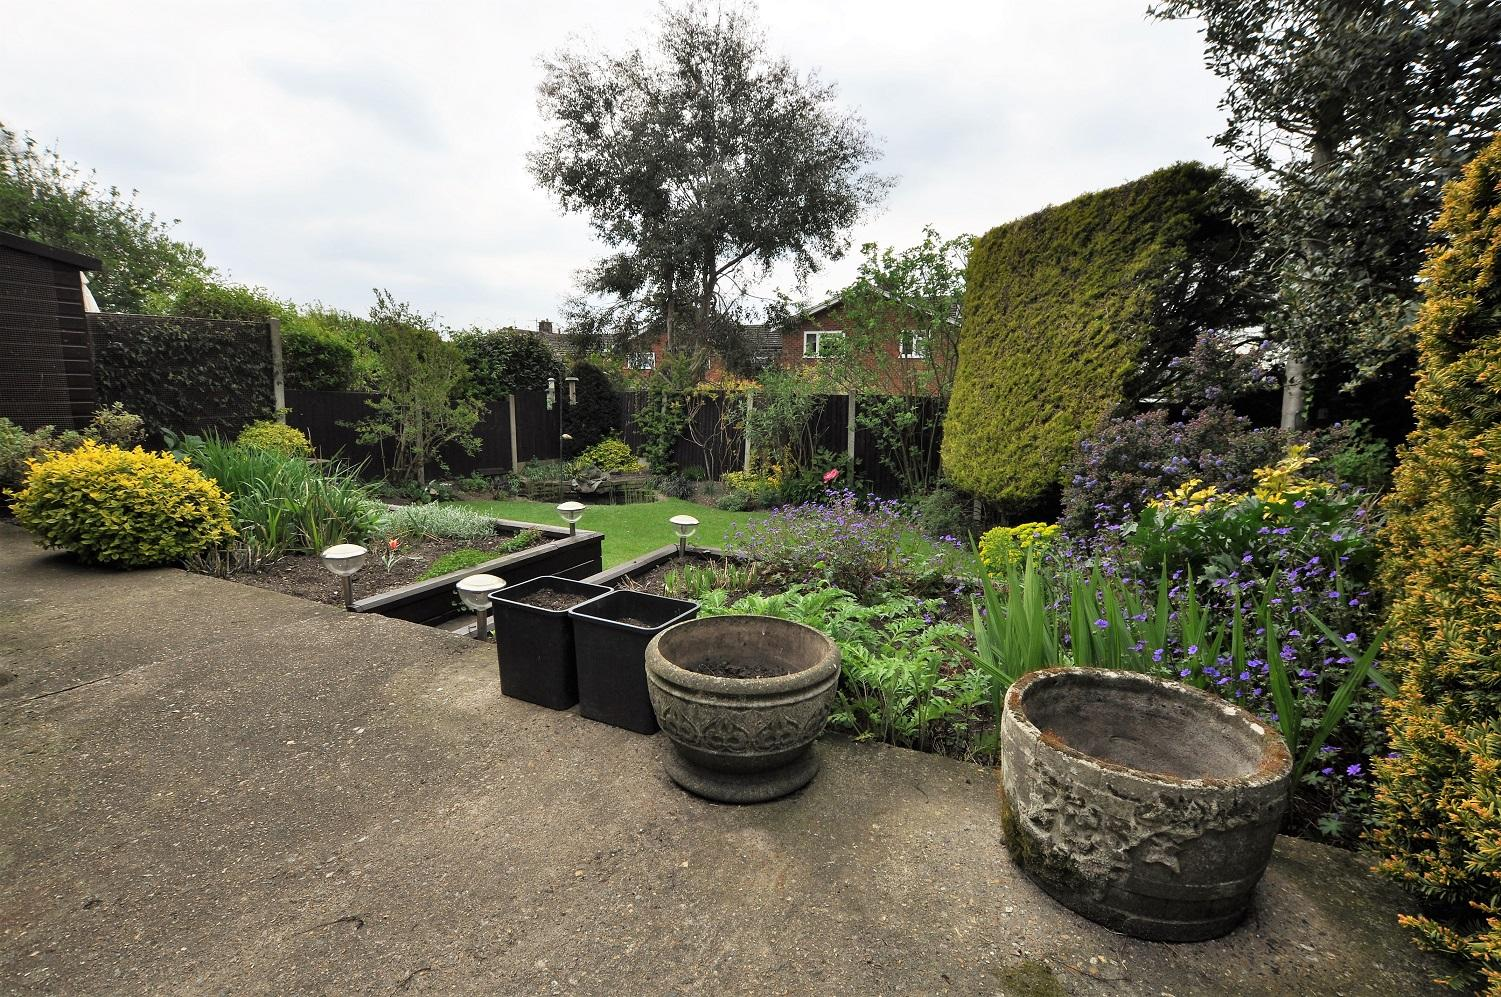 3 Bedroom Semi Detached House For Sale In Hertfordshire